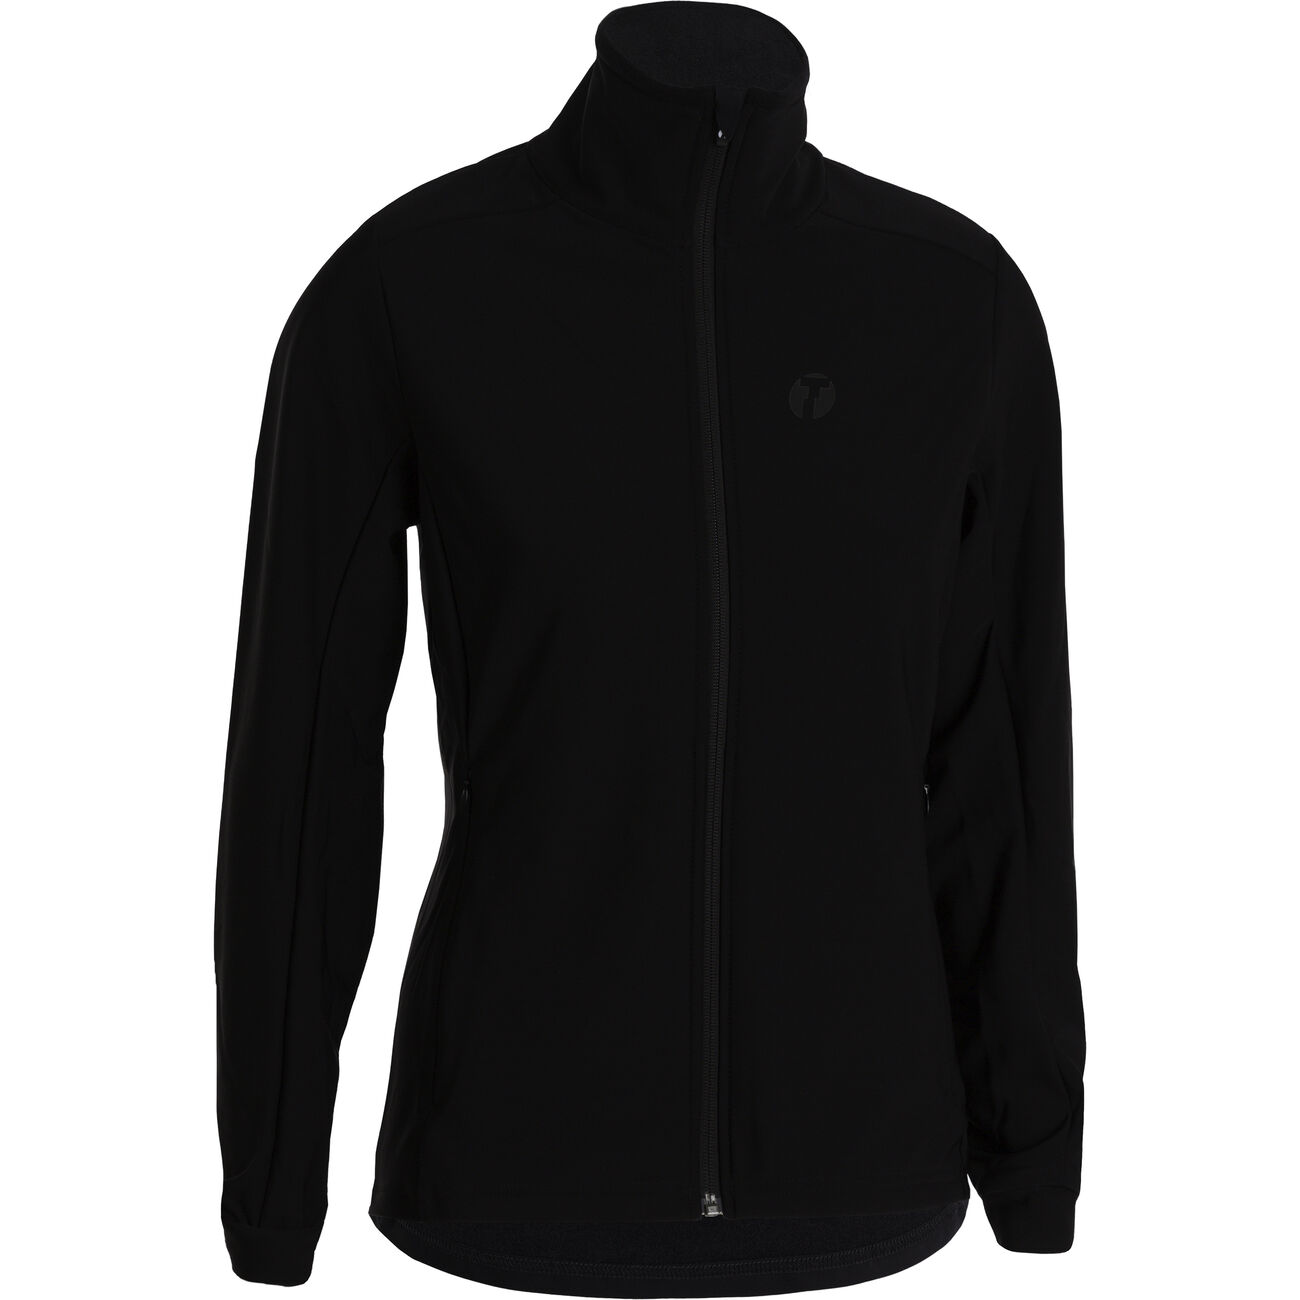 Escape Fleece women's